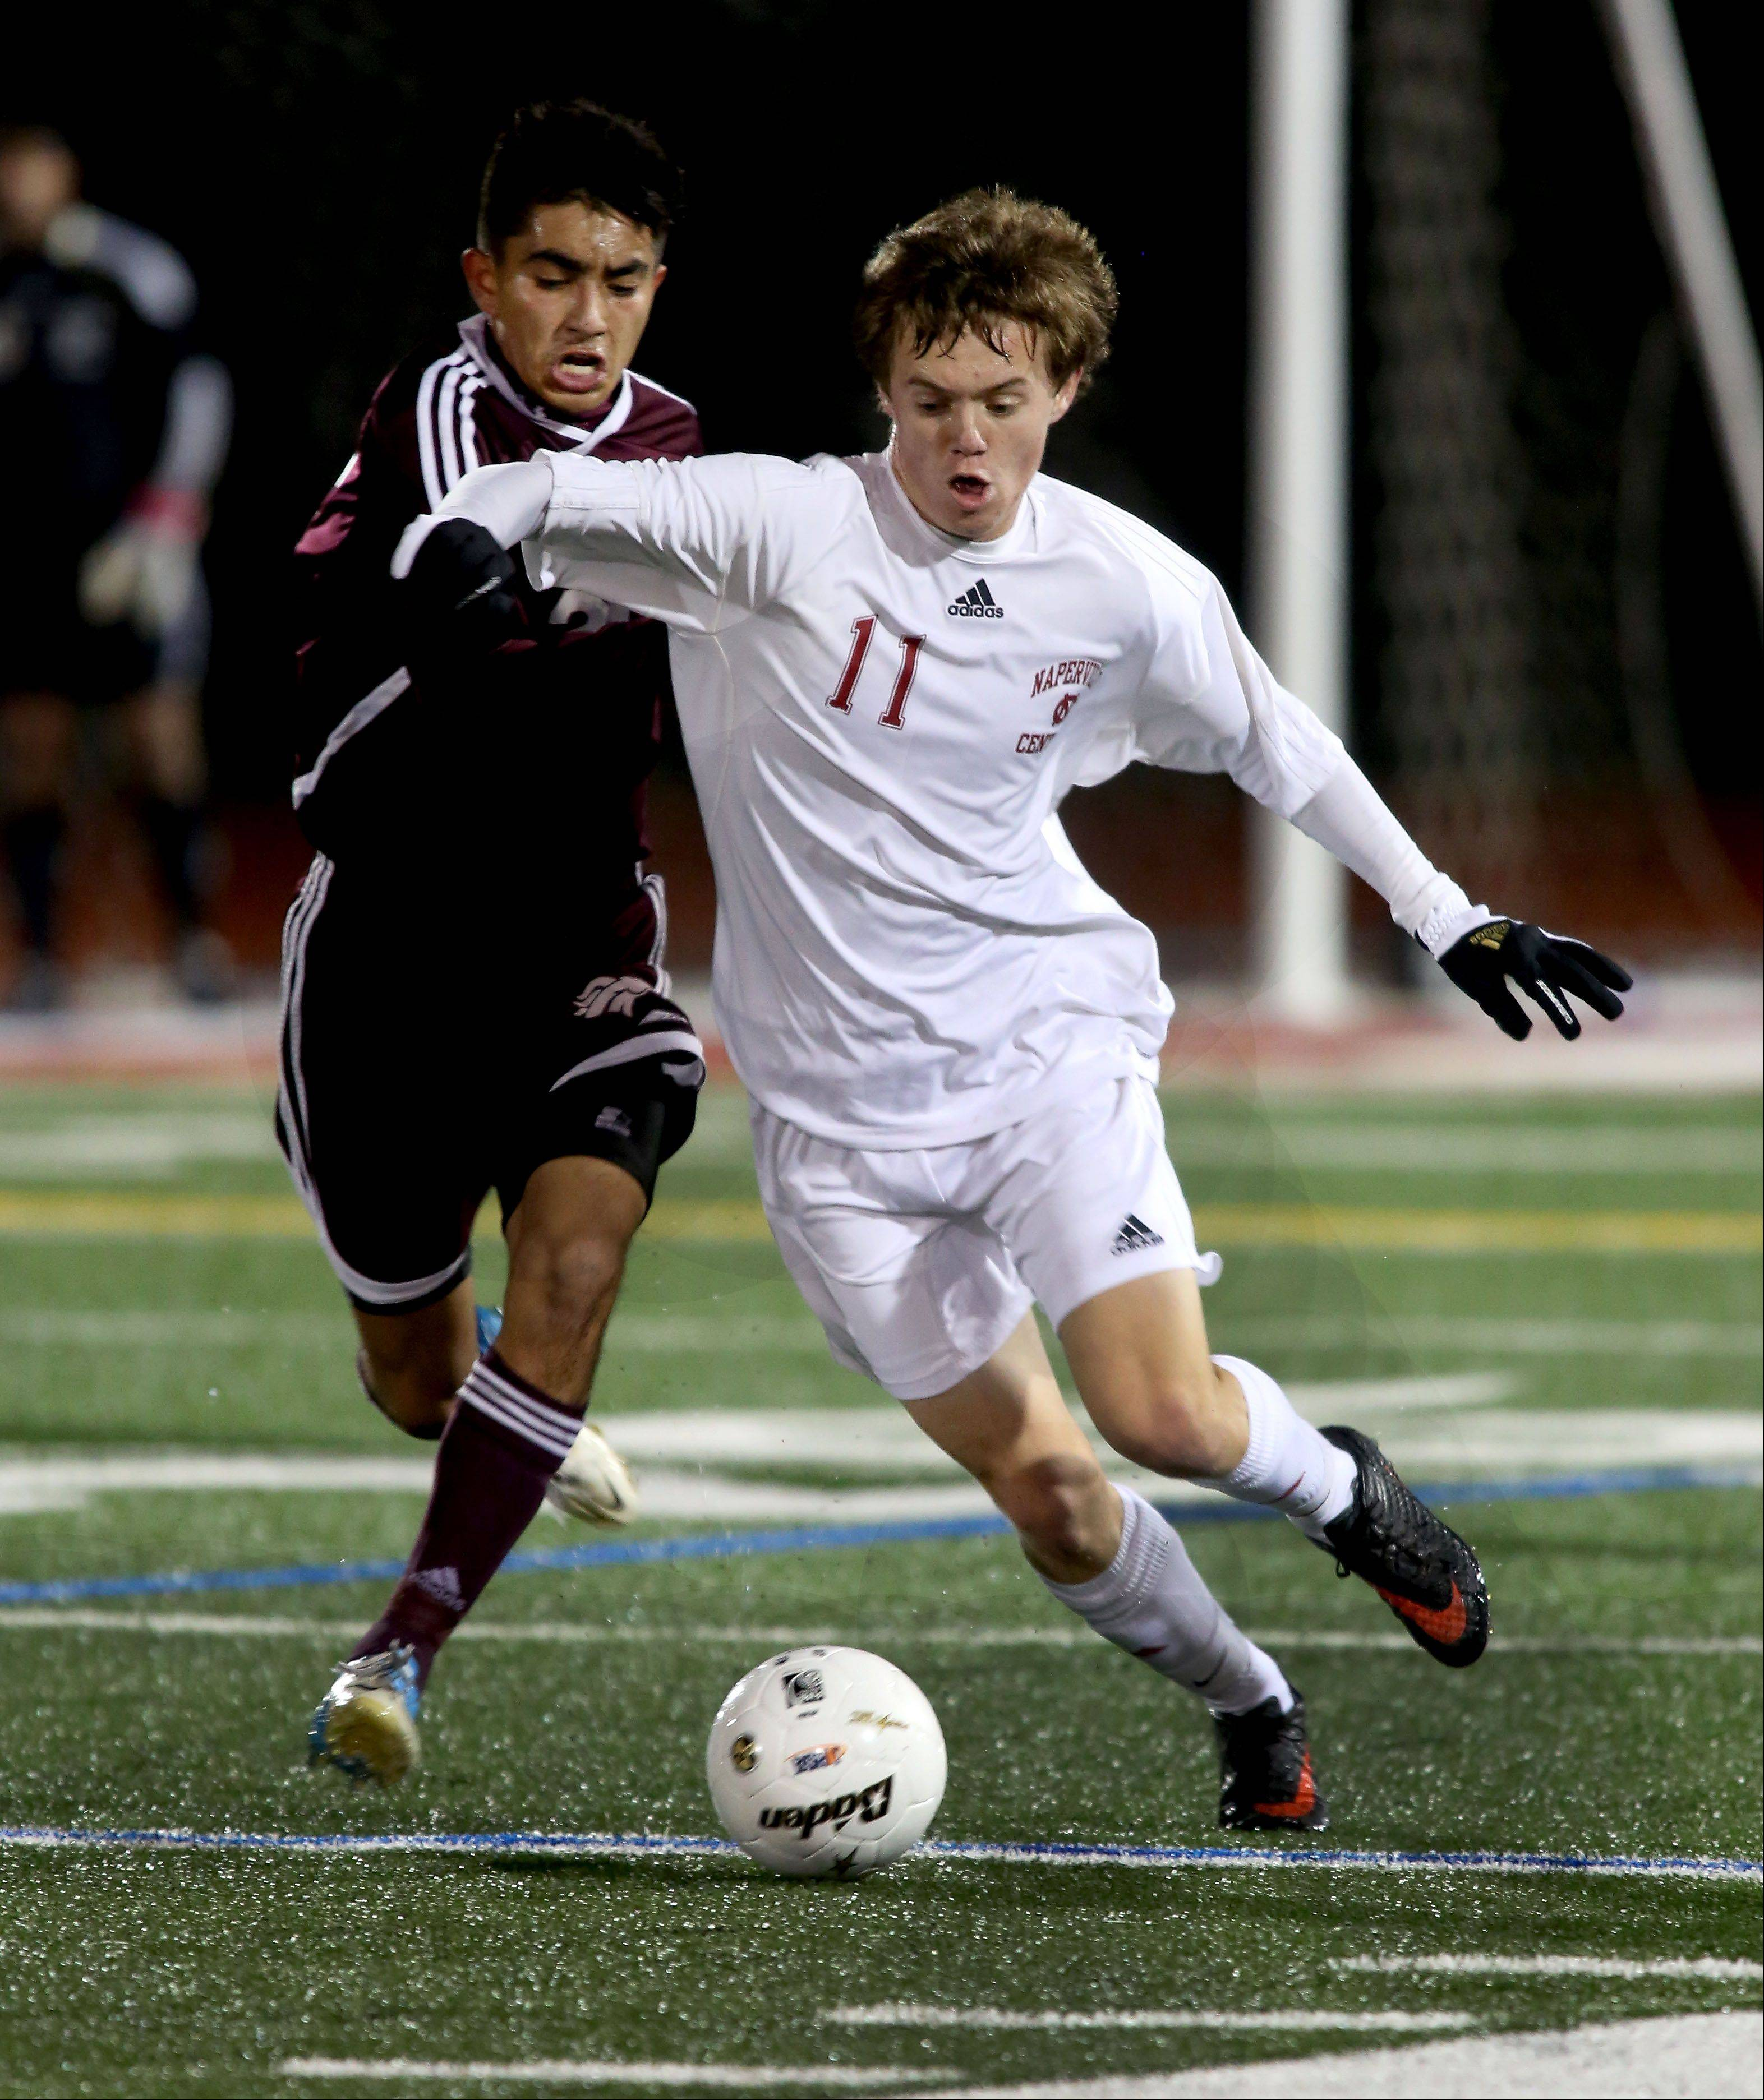 Ben Border of Naperville Central, right, takes the ball from Leo Delgado of Morton, left, during Class 3A super-sectional soccer in Romeoville on Tuesday.